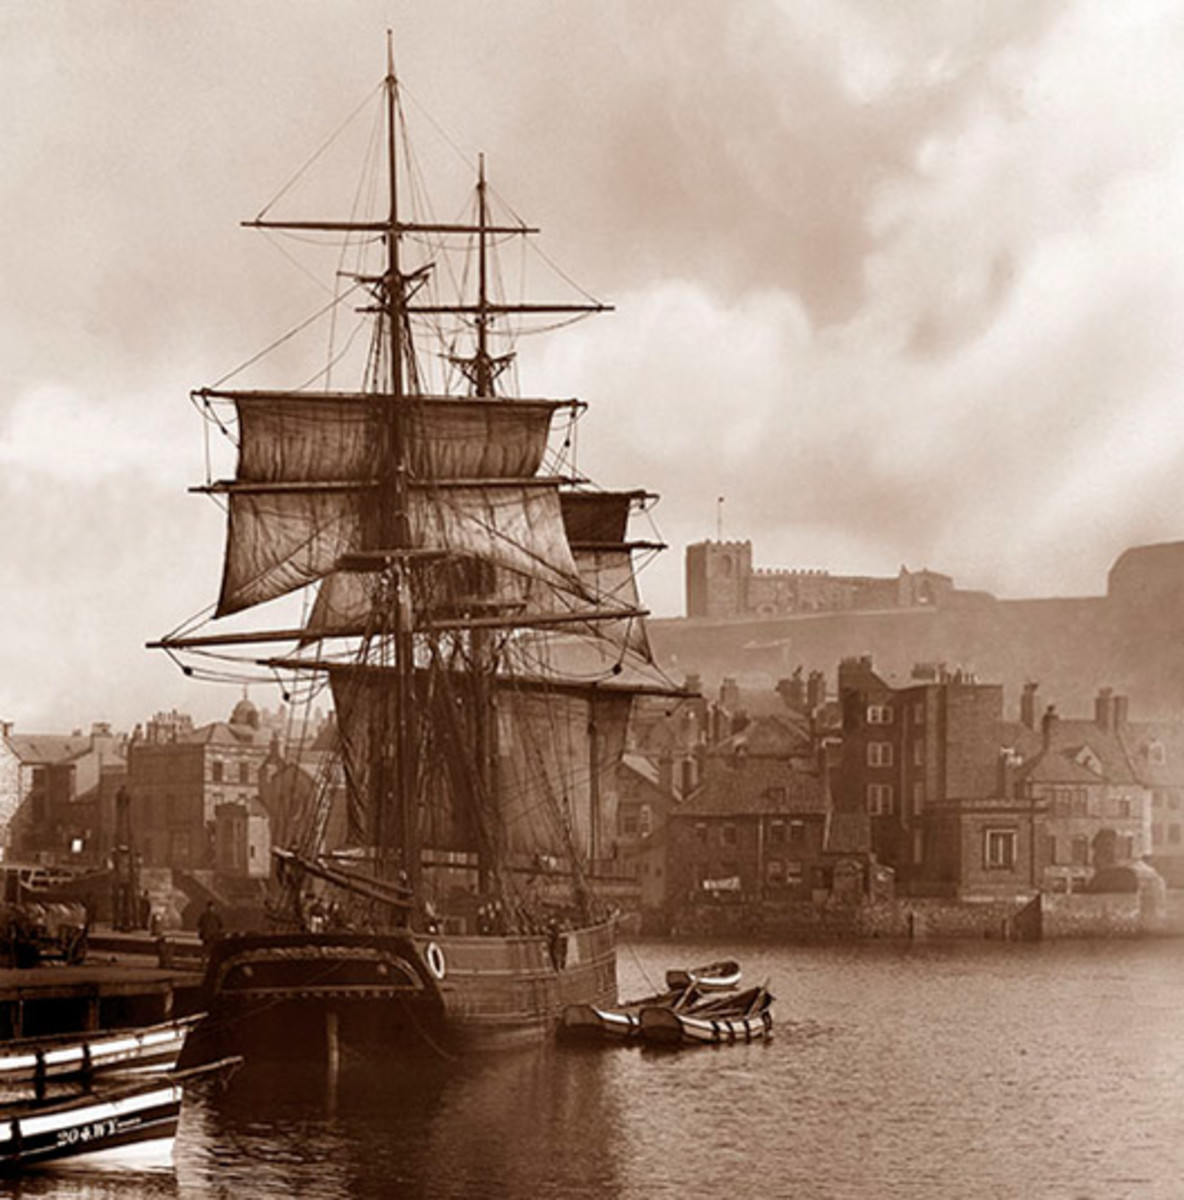 A Whitby 'Cat' cabled in Whitby Harbour at the turn of the 20th Century, taken by the well-known local photographer Frank Meadows Sutcliffe